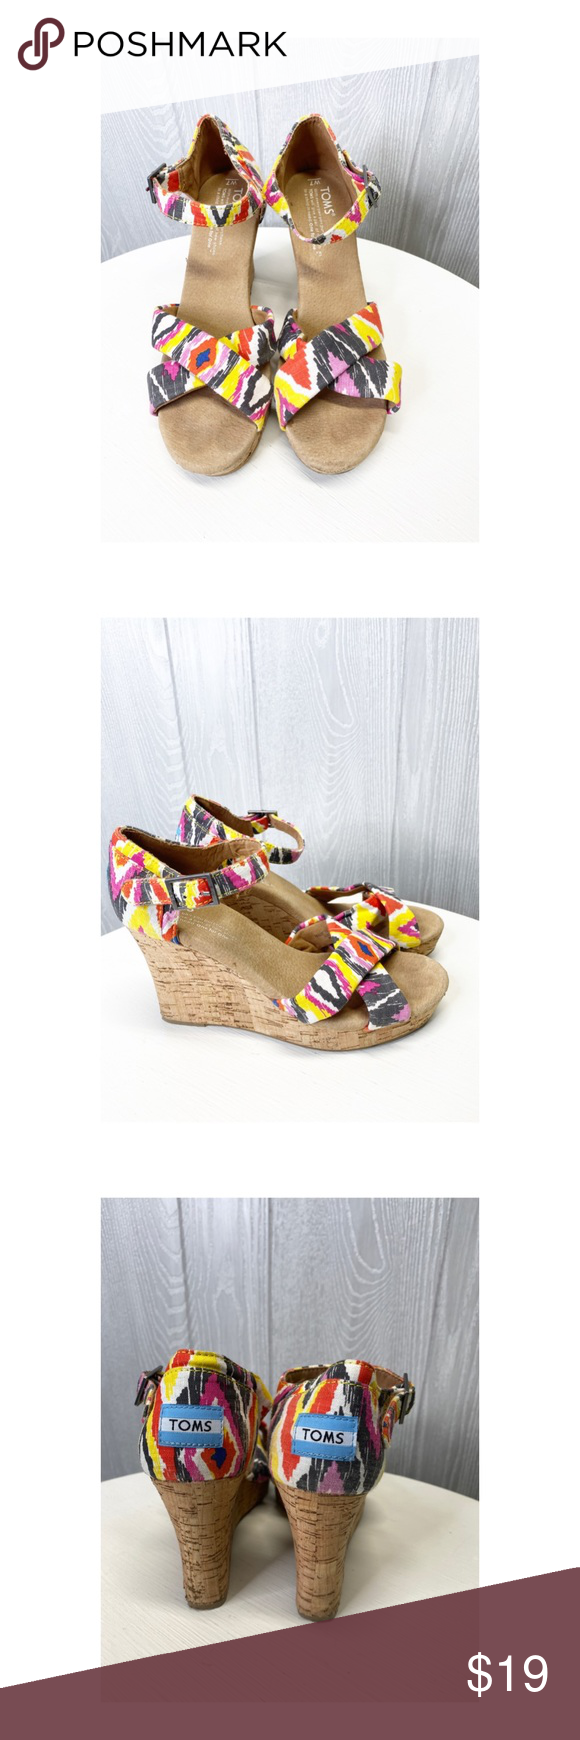 Toms Wedges 7M Euc. Toms Wedges sandals size 7. Smoke free home. Fast shipping. Toms Shoes Wedges #tomwedges Toms Wedges 7M Euc. Toms Wedges sandals size 7. Smoke free home. Fast shipping. Toms Shoes Wedges #tomwedges